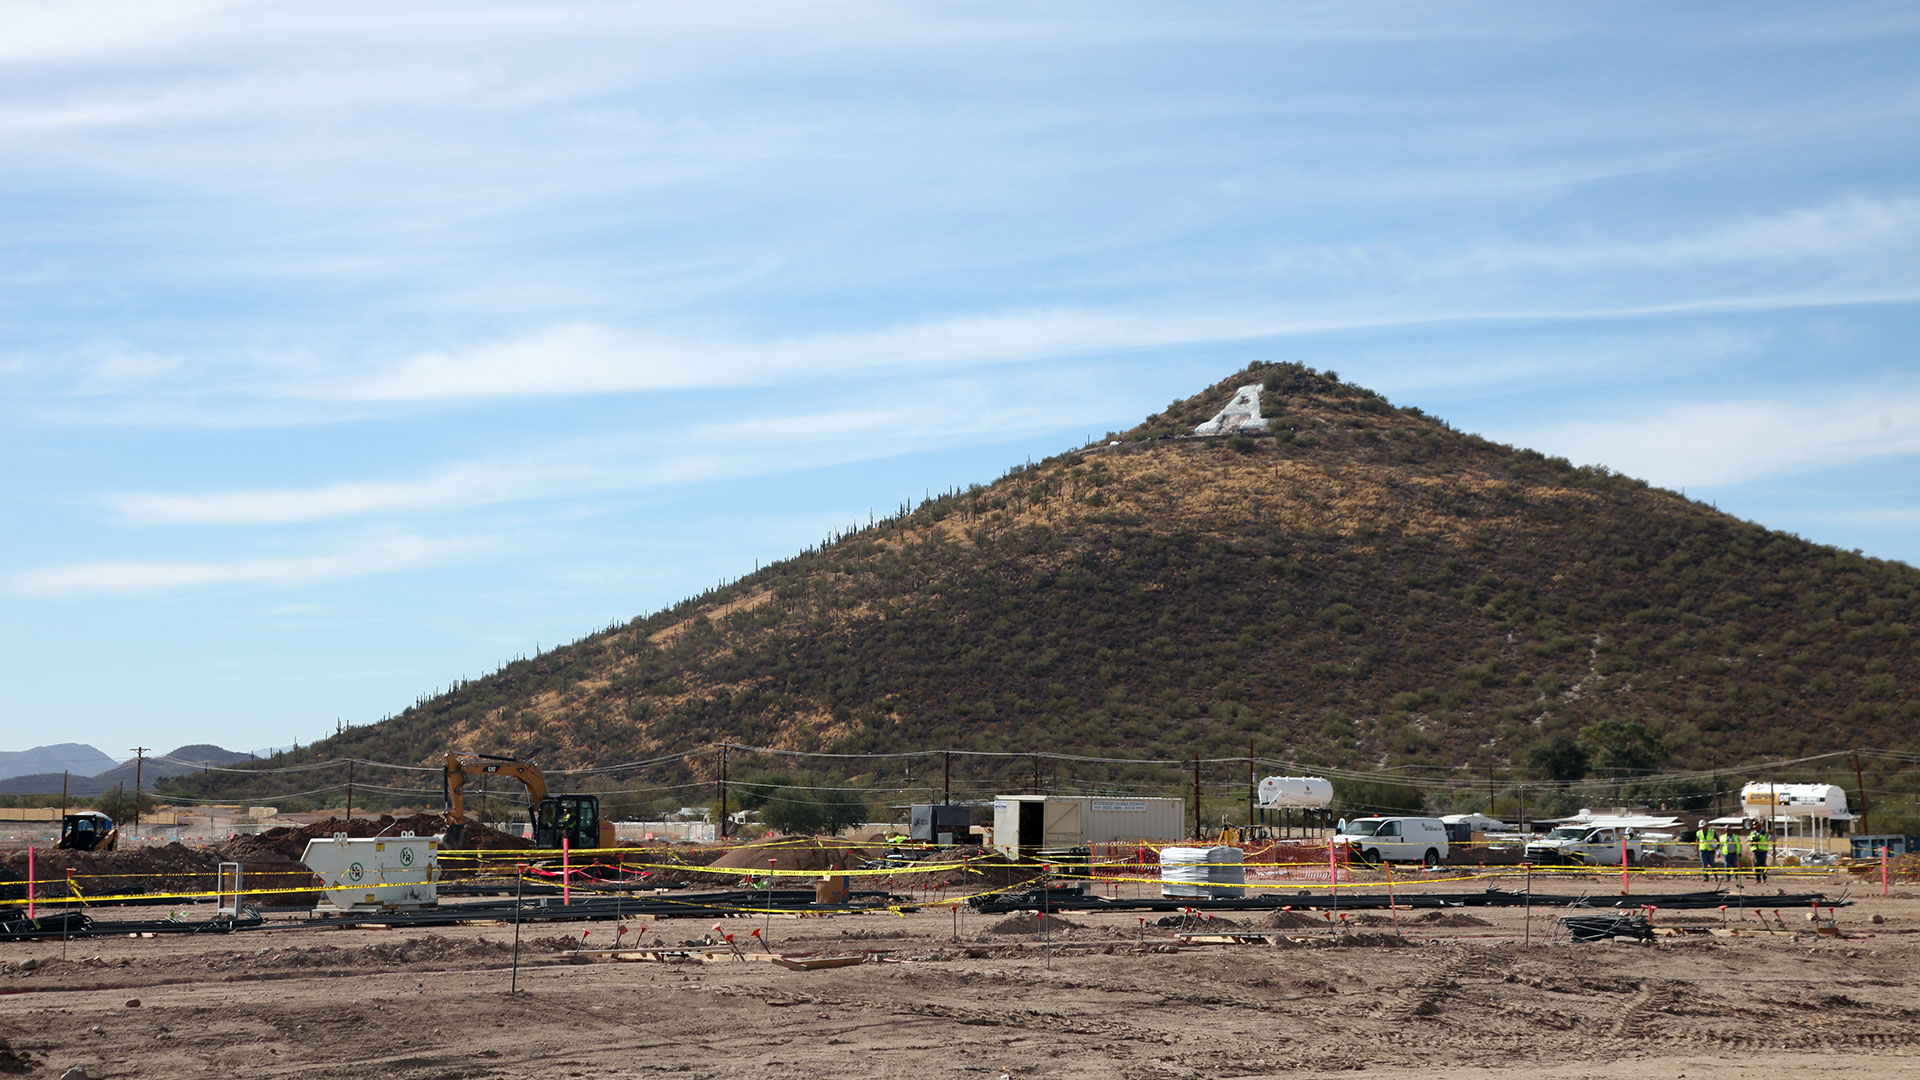 Construction near the base of 'A Mountain.'